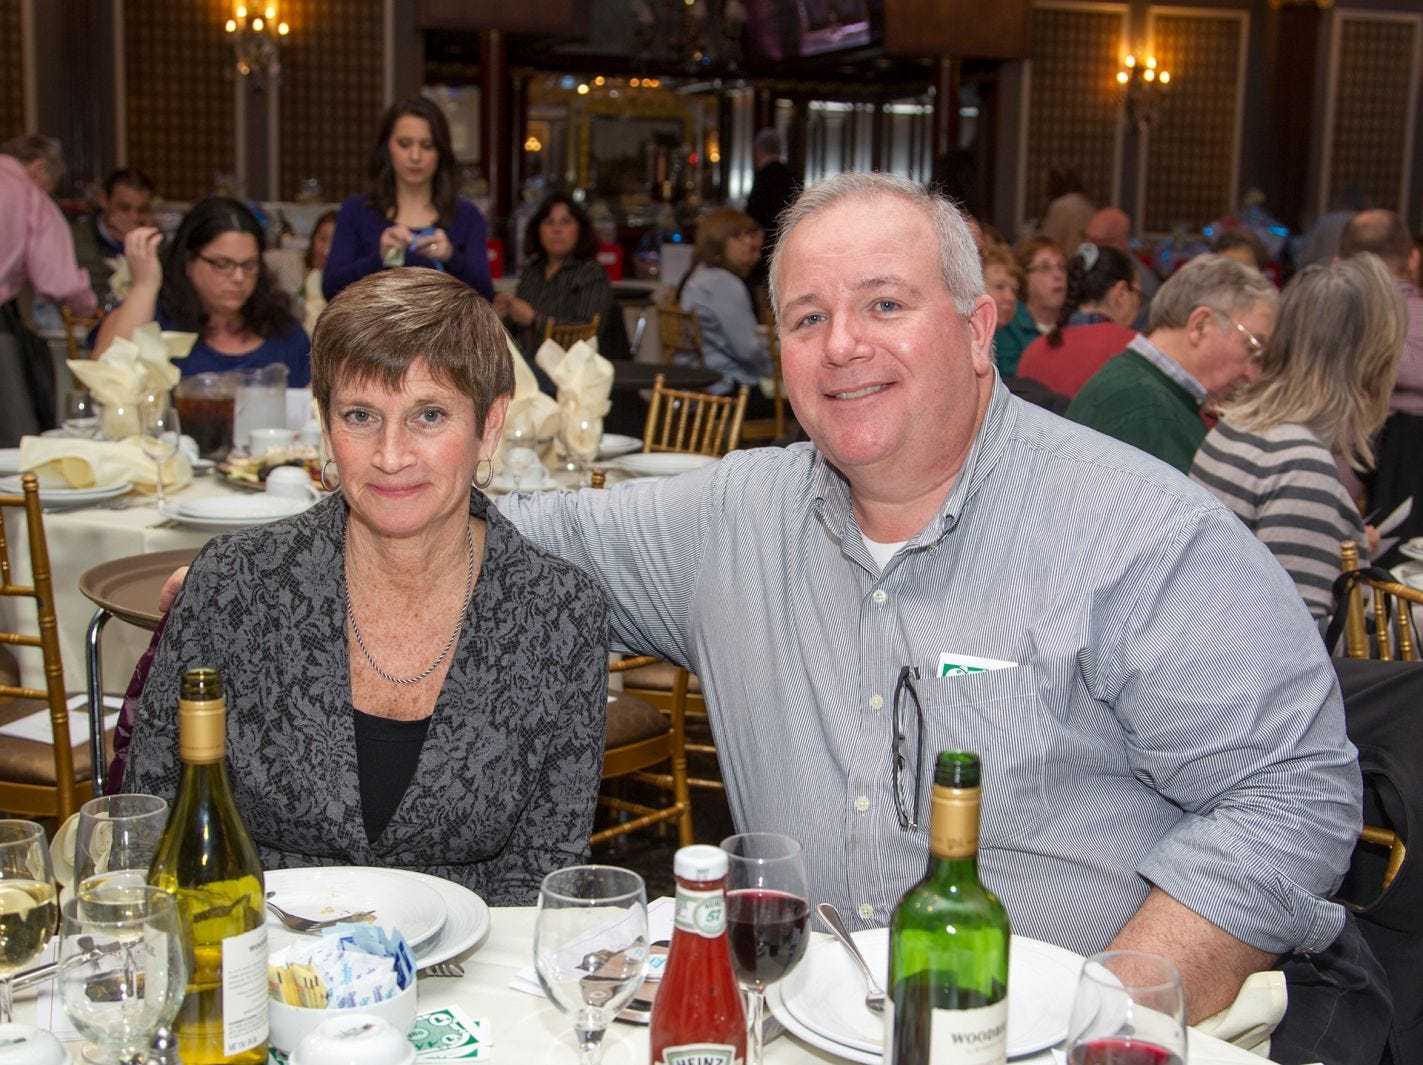 Nancy McHale, Don Tassitano. A Night at the Races hosted by OASIS at the Brownstone in Paterson. 2/7/2019